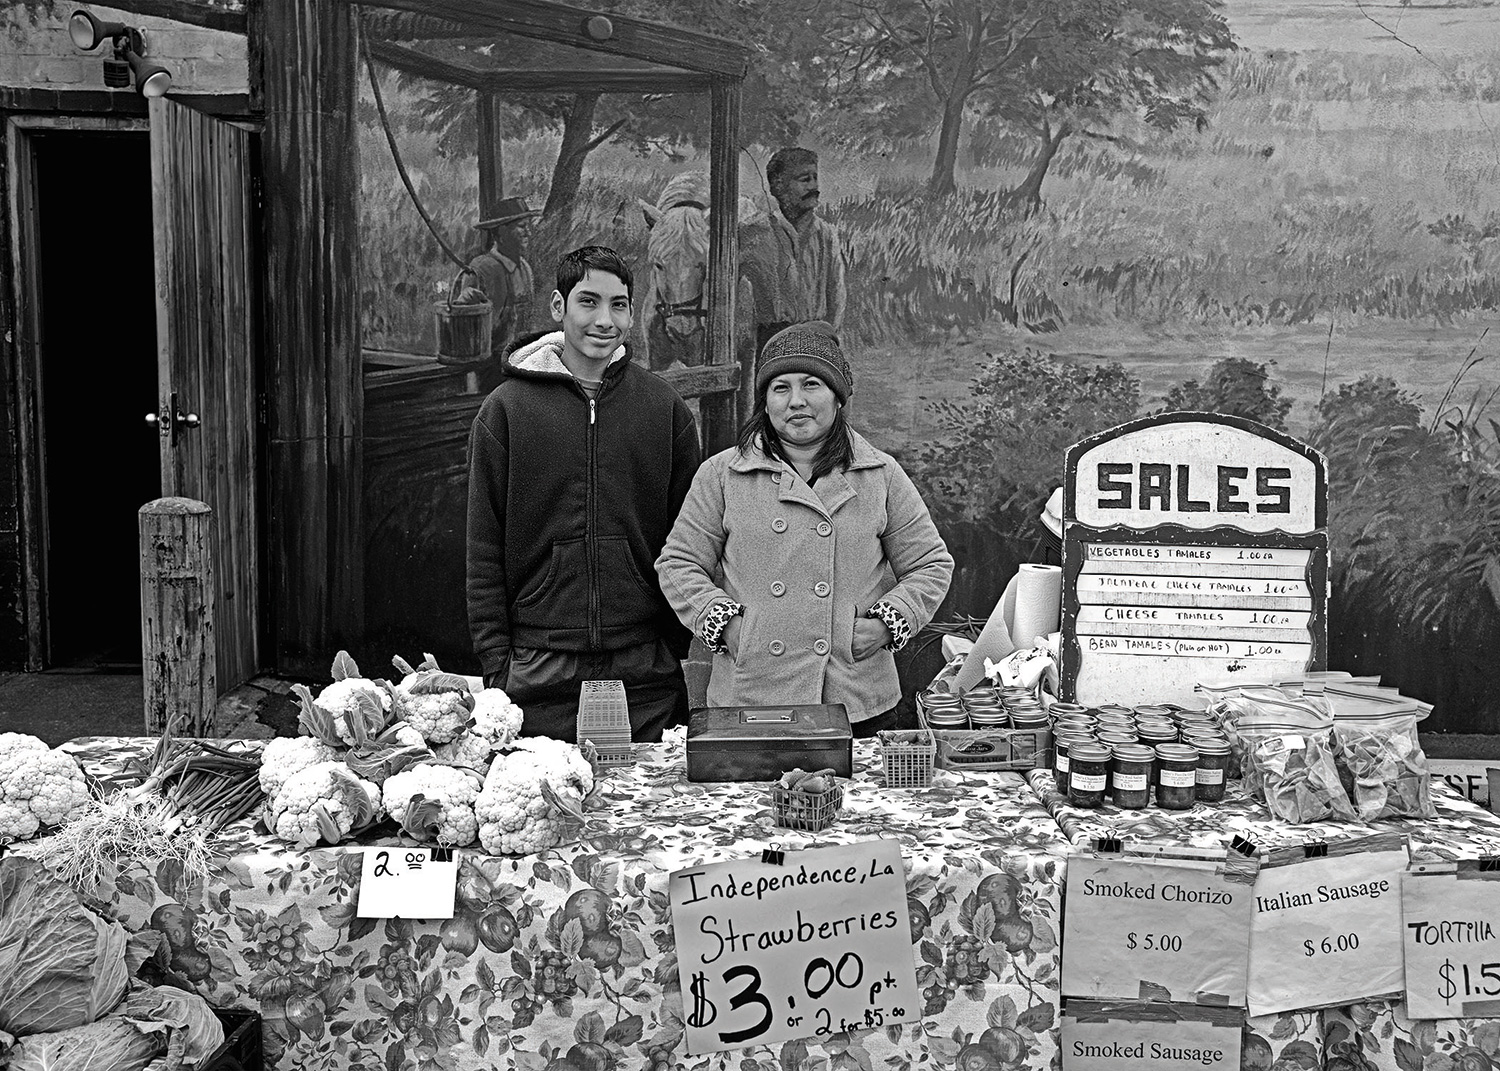 Photographer: David G. Spielman.Maria Mendez and her son at a farmers market selling their produce.